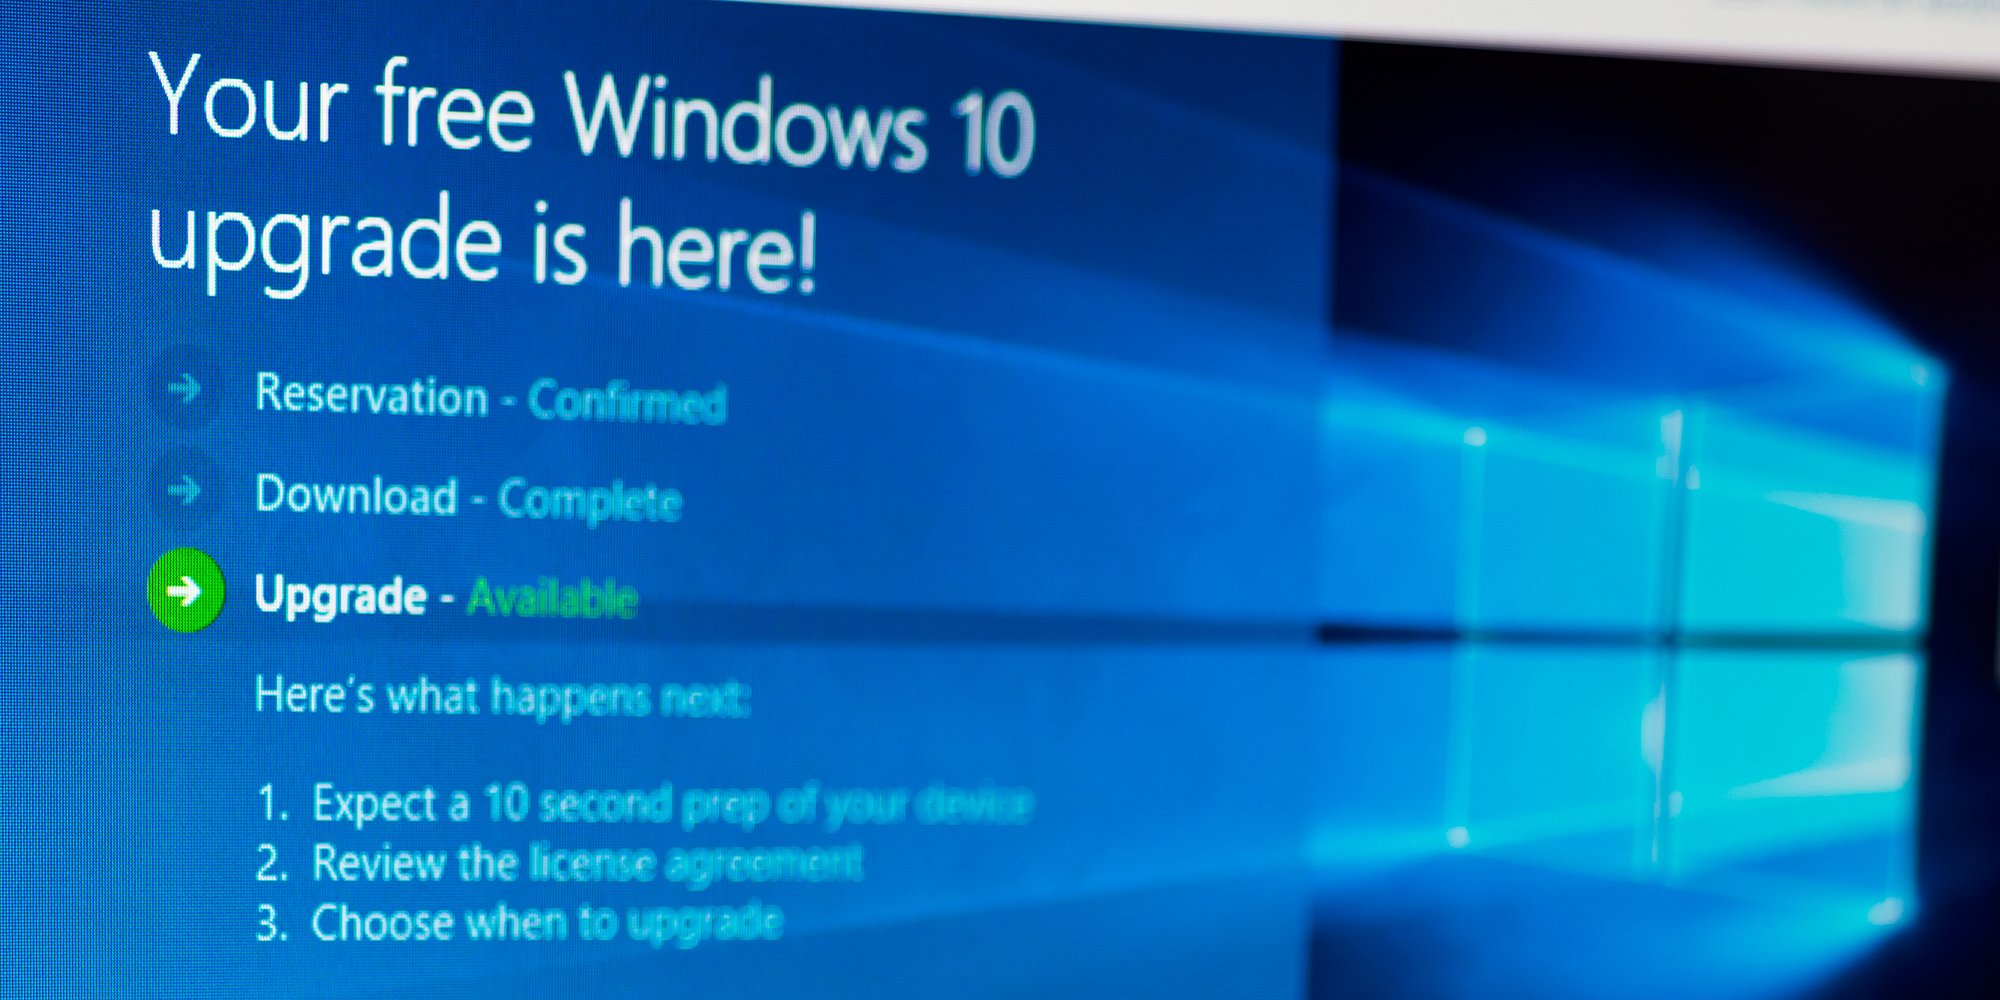 How to silence those Windows 10 upgrades